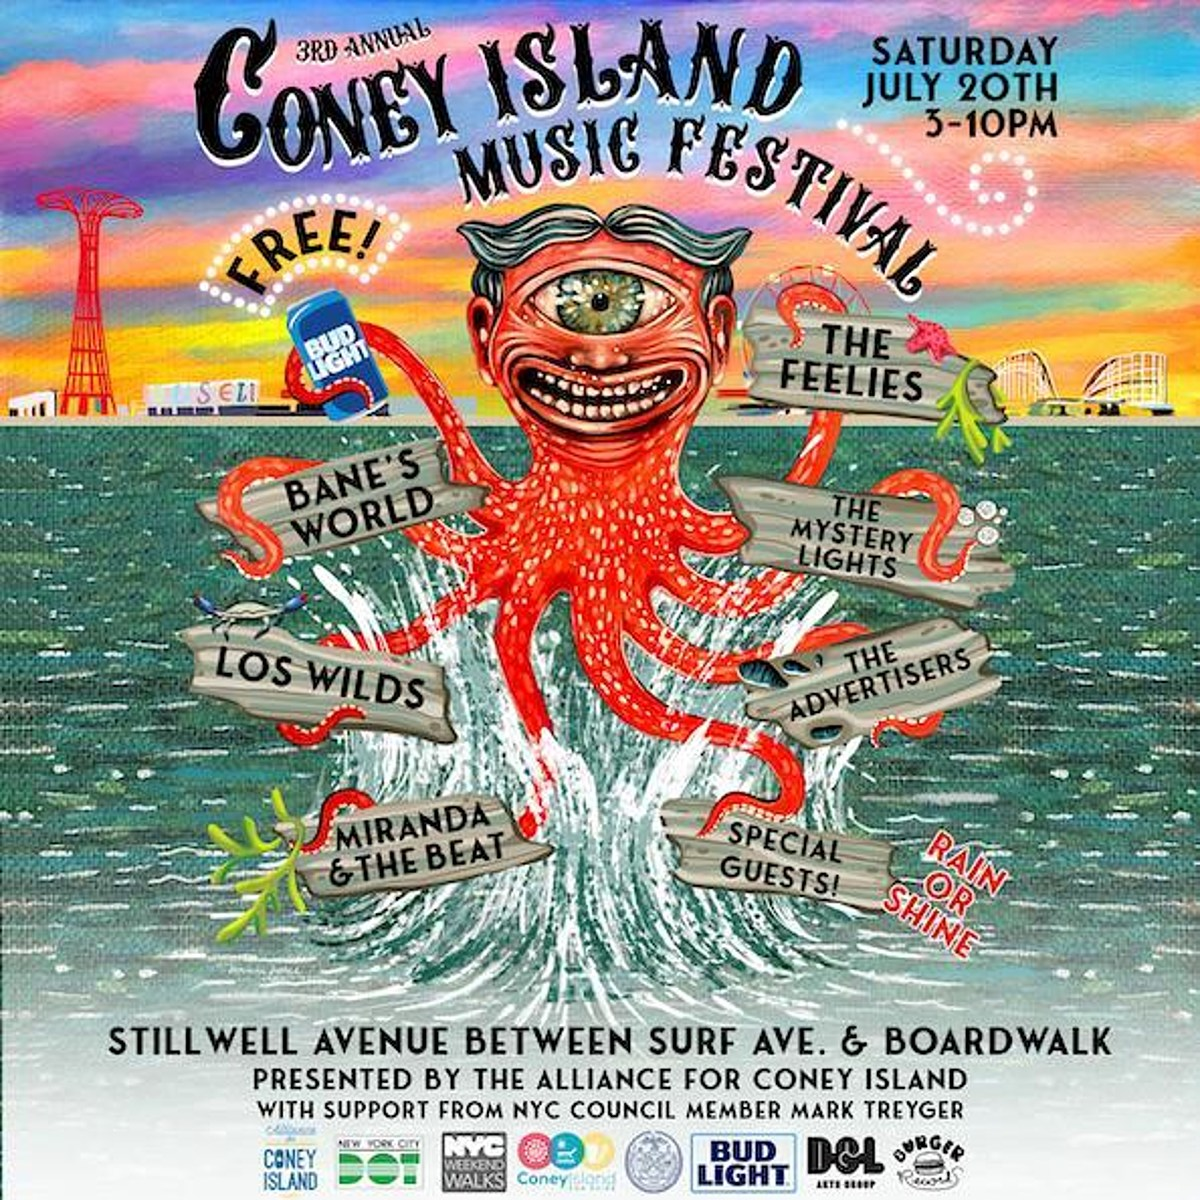 2019 free Coney Island Music Festival initial lineup The Feelies, Mystery Lights, more